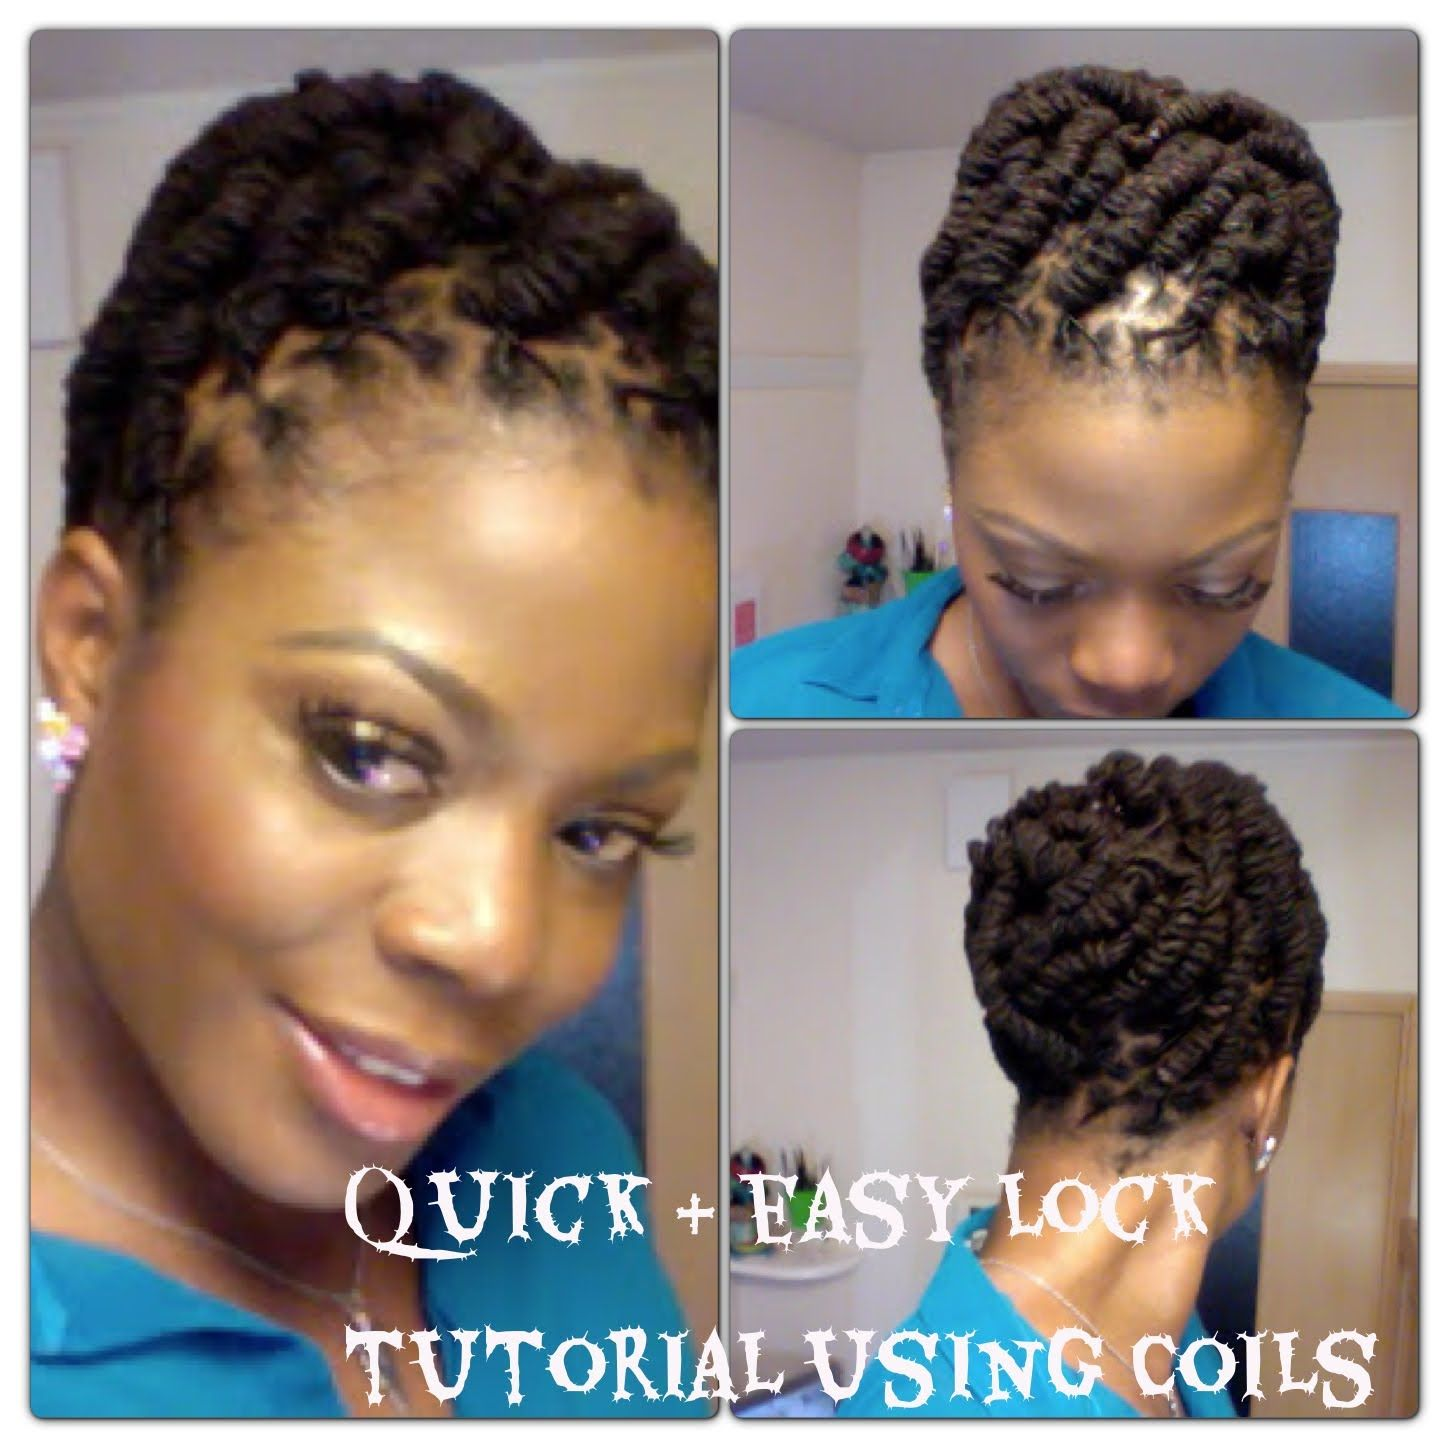 The Home Of Locs Did You Struggle With Your Locs In The Beginning Locs Hairstyles Short Locs Hairstyles Natural Hair Styles